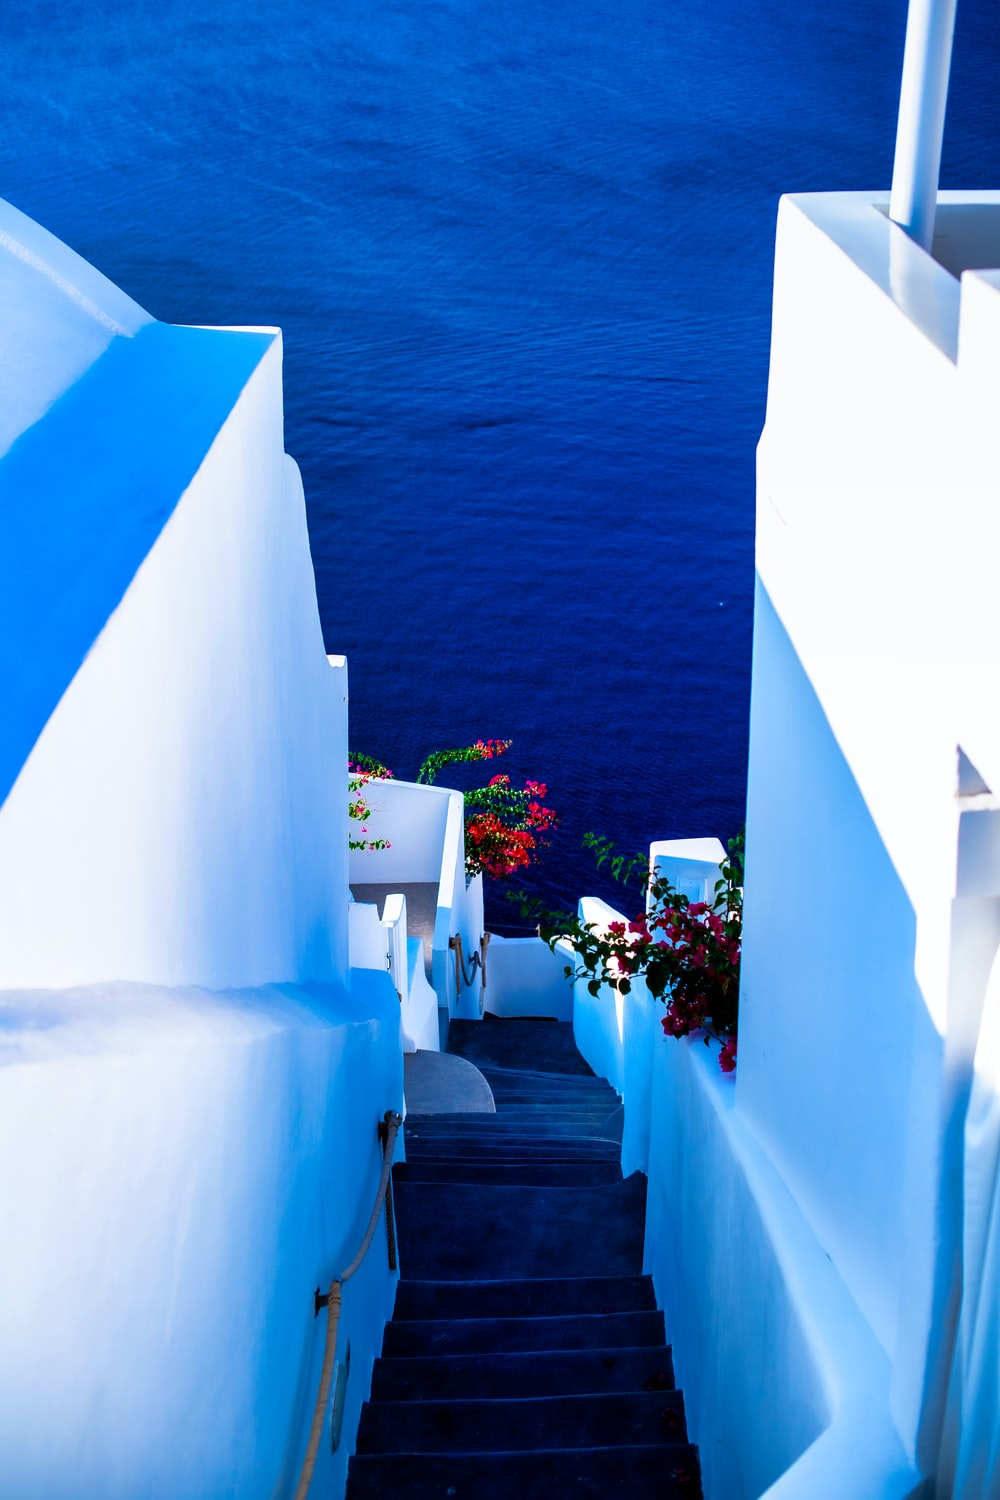 white concrete staircase near body of water during daytime